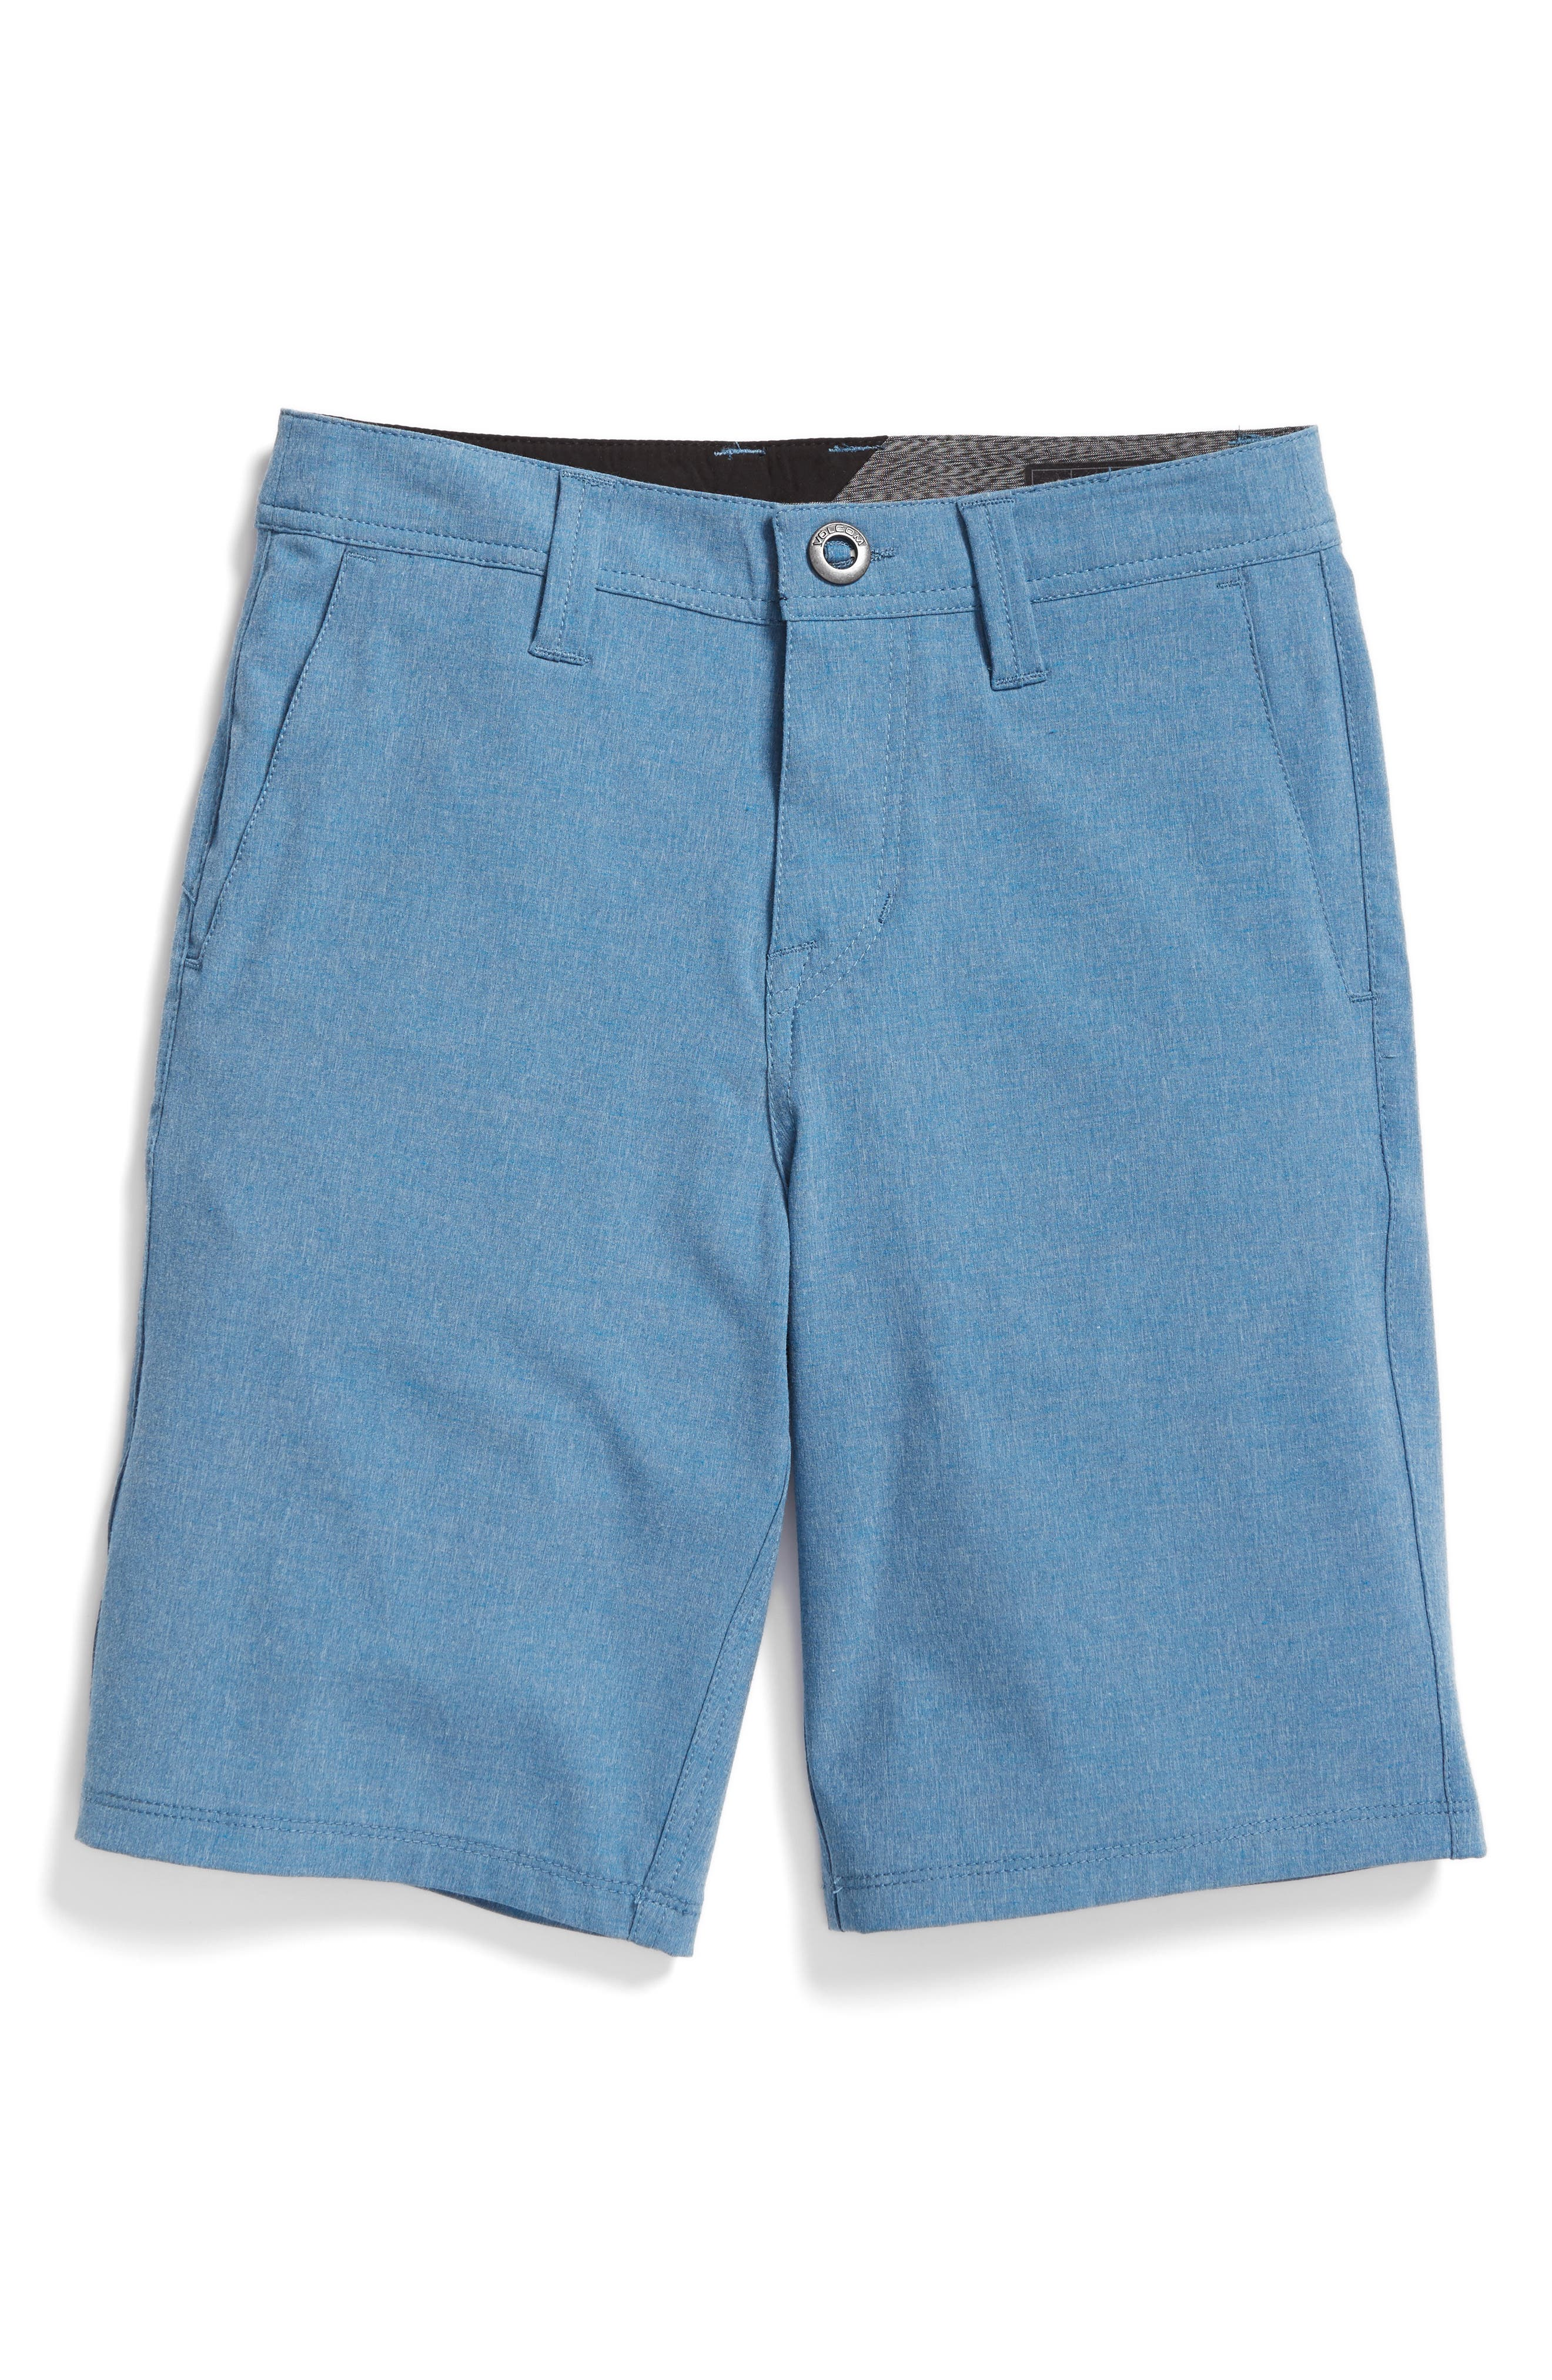 Main Image - Volcom Surf N' Turf Static Hybrid Shorts (Toddler Boys, Little Boys & Big Boys)